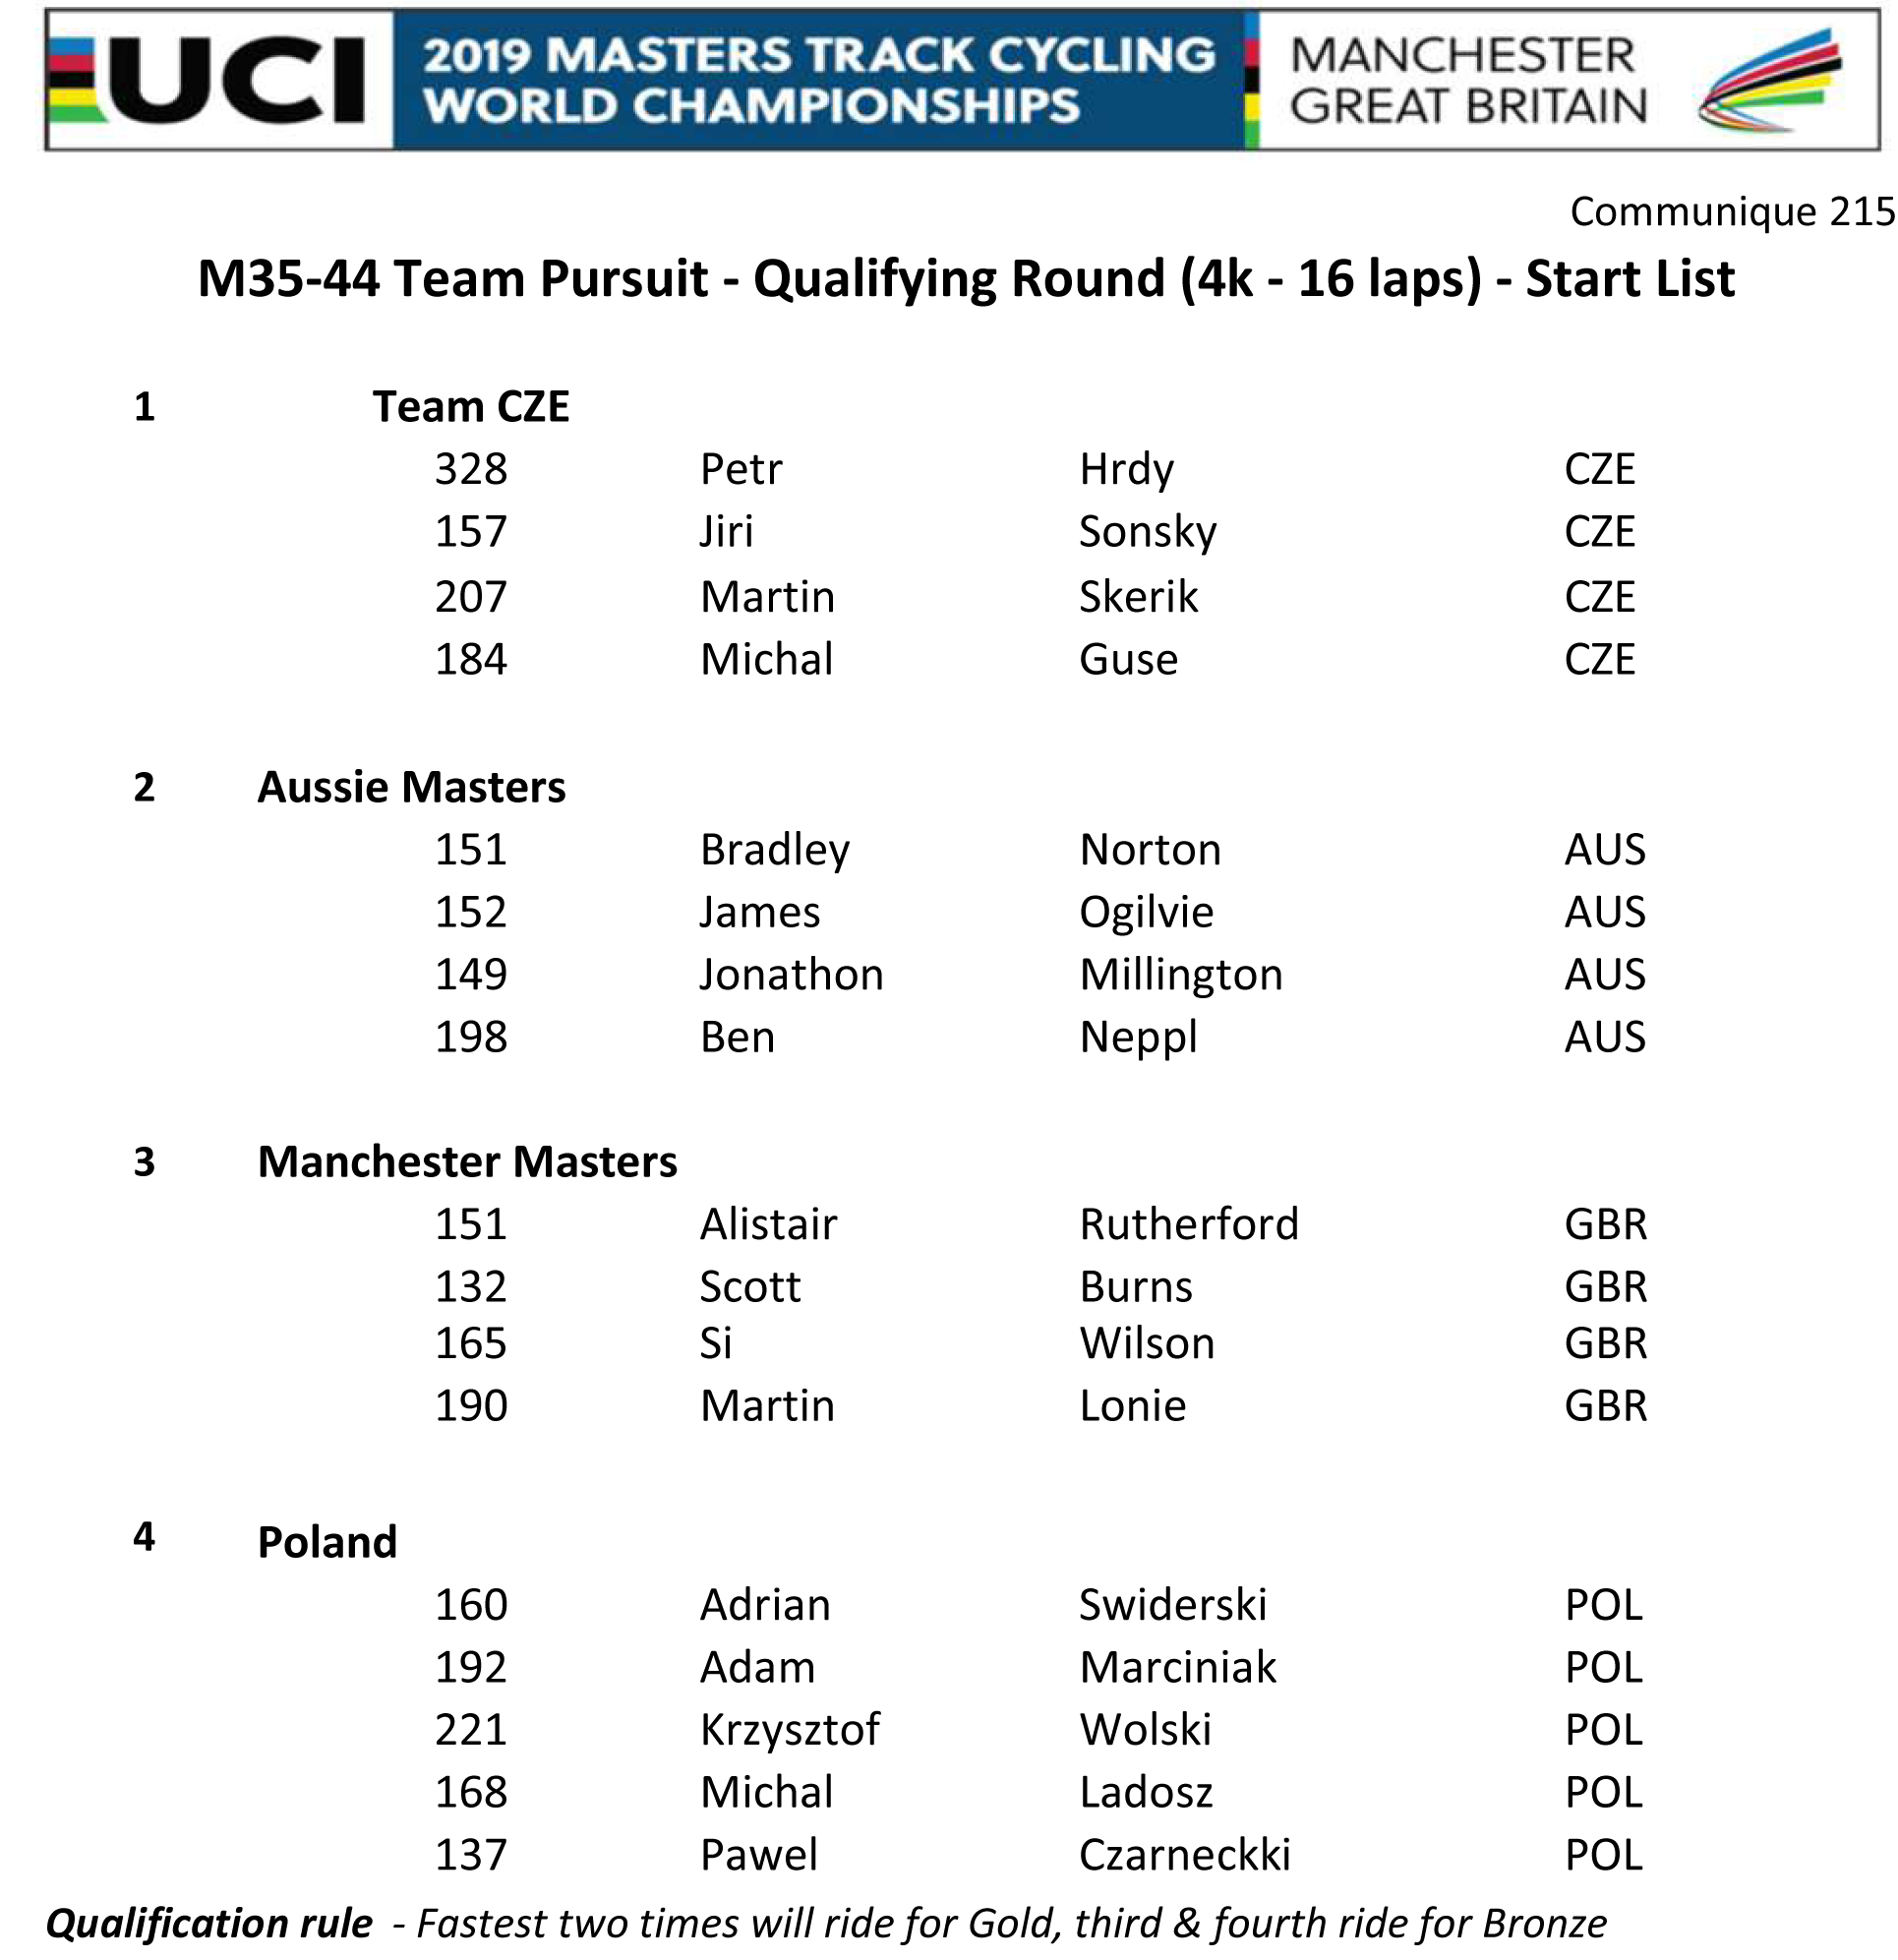 M3544 TEAM PURSUIT START LIST